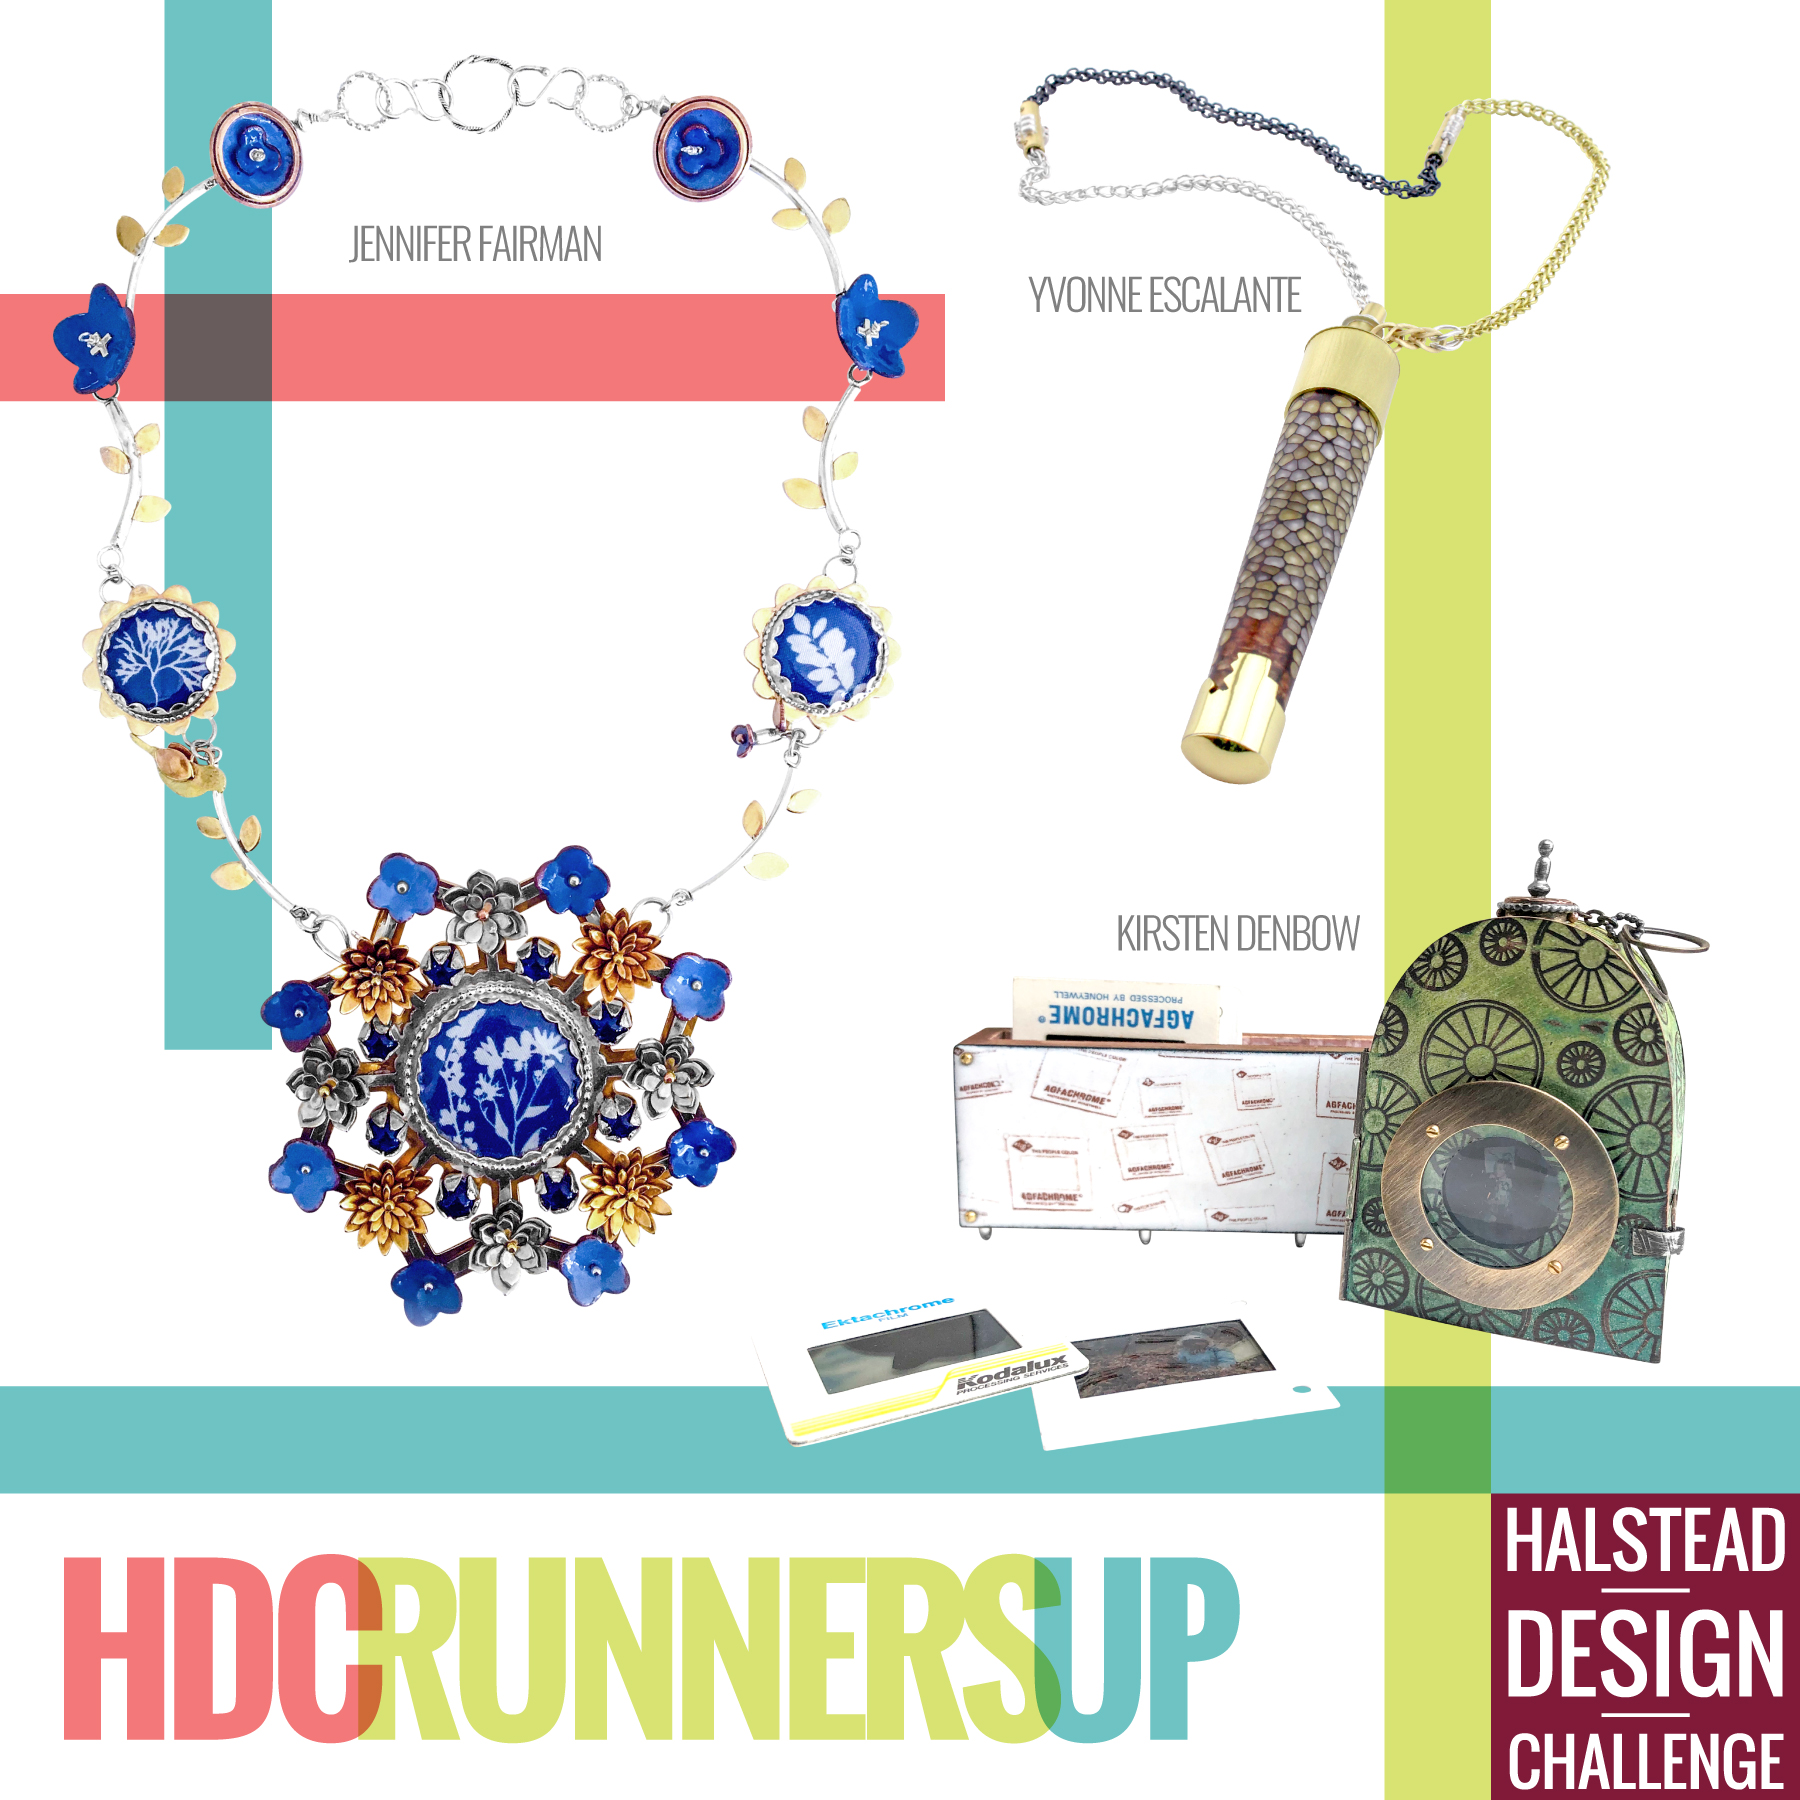 HDC 2020 Runners Up: Jennifer Fairman, Yvonne Escalante, Kirsten Denbow